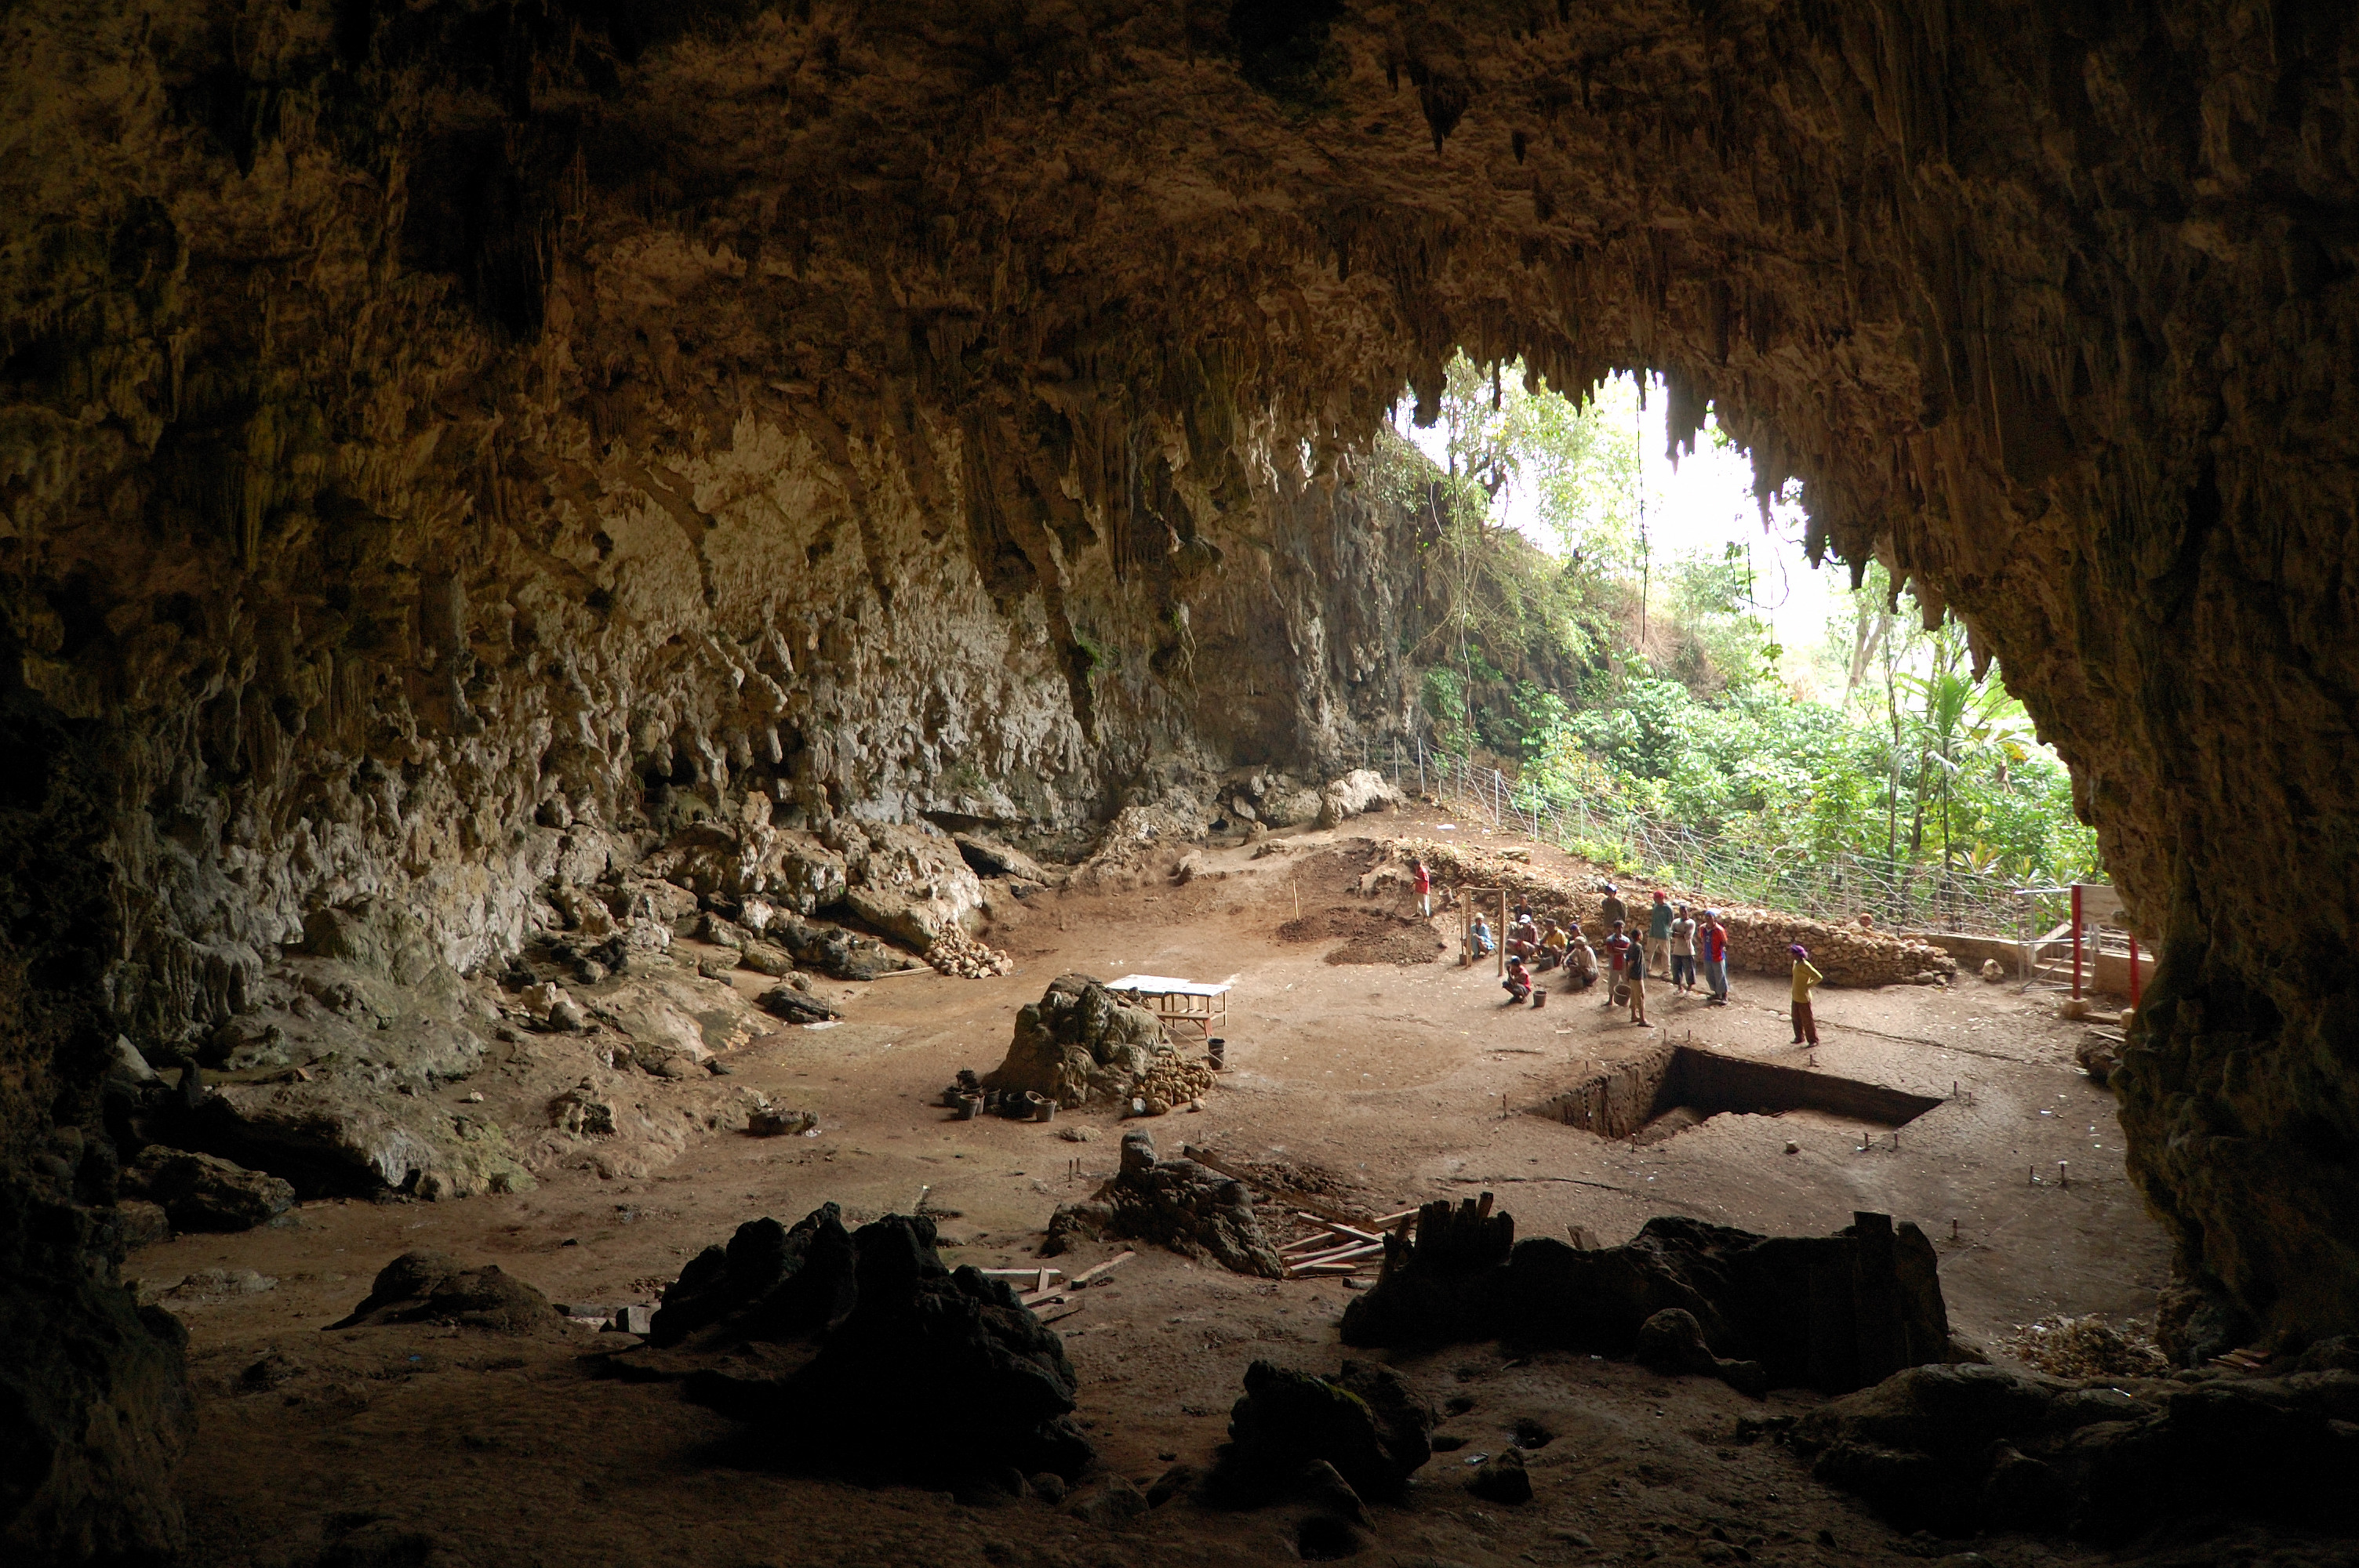 http://upload.wikimedia.org/wikipedia/commons/d/d3/Homo_floresiensis_cave.jpg